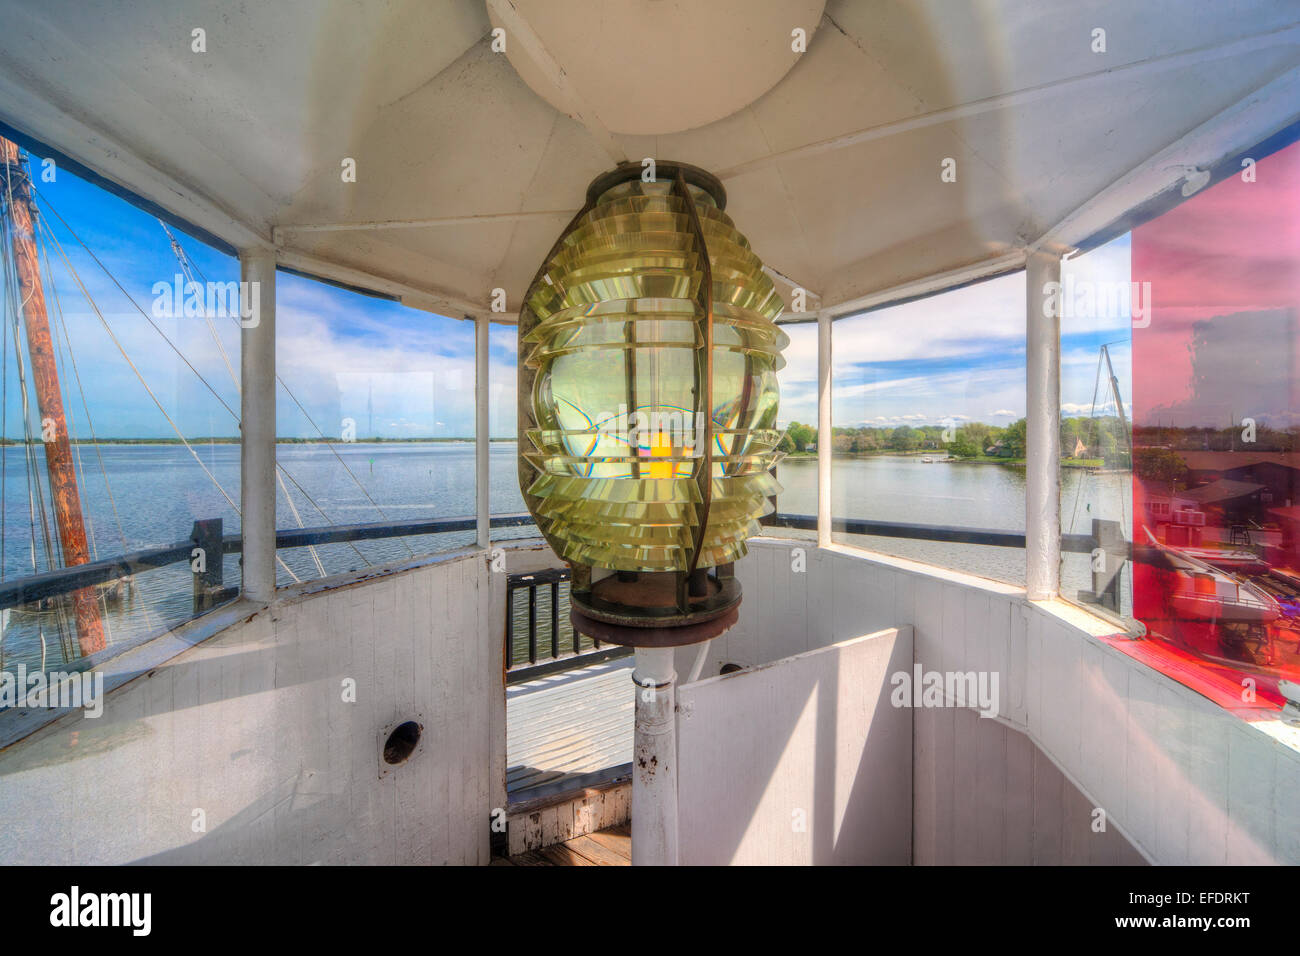 Chesapeake Bay Maritime Museum. The Fresnel lens of the Hooper Strait Lighthouse at Navy Point, St. Michaels Maryland - Stock Image